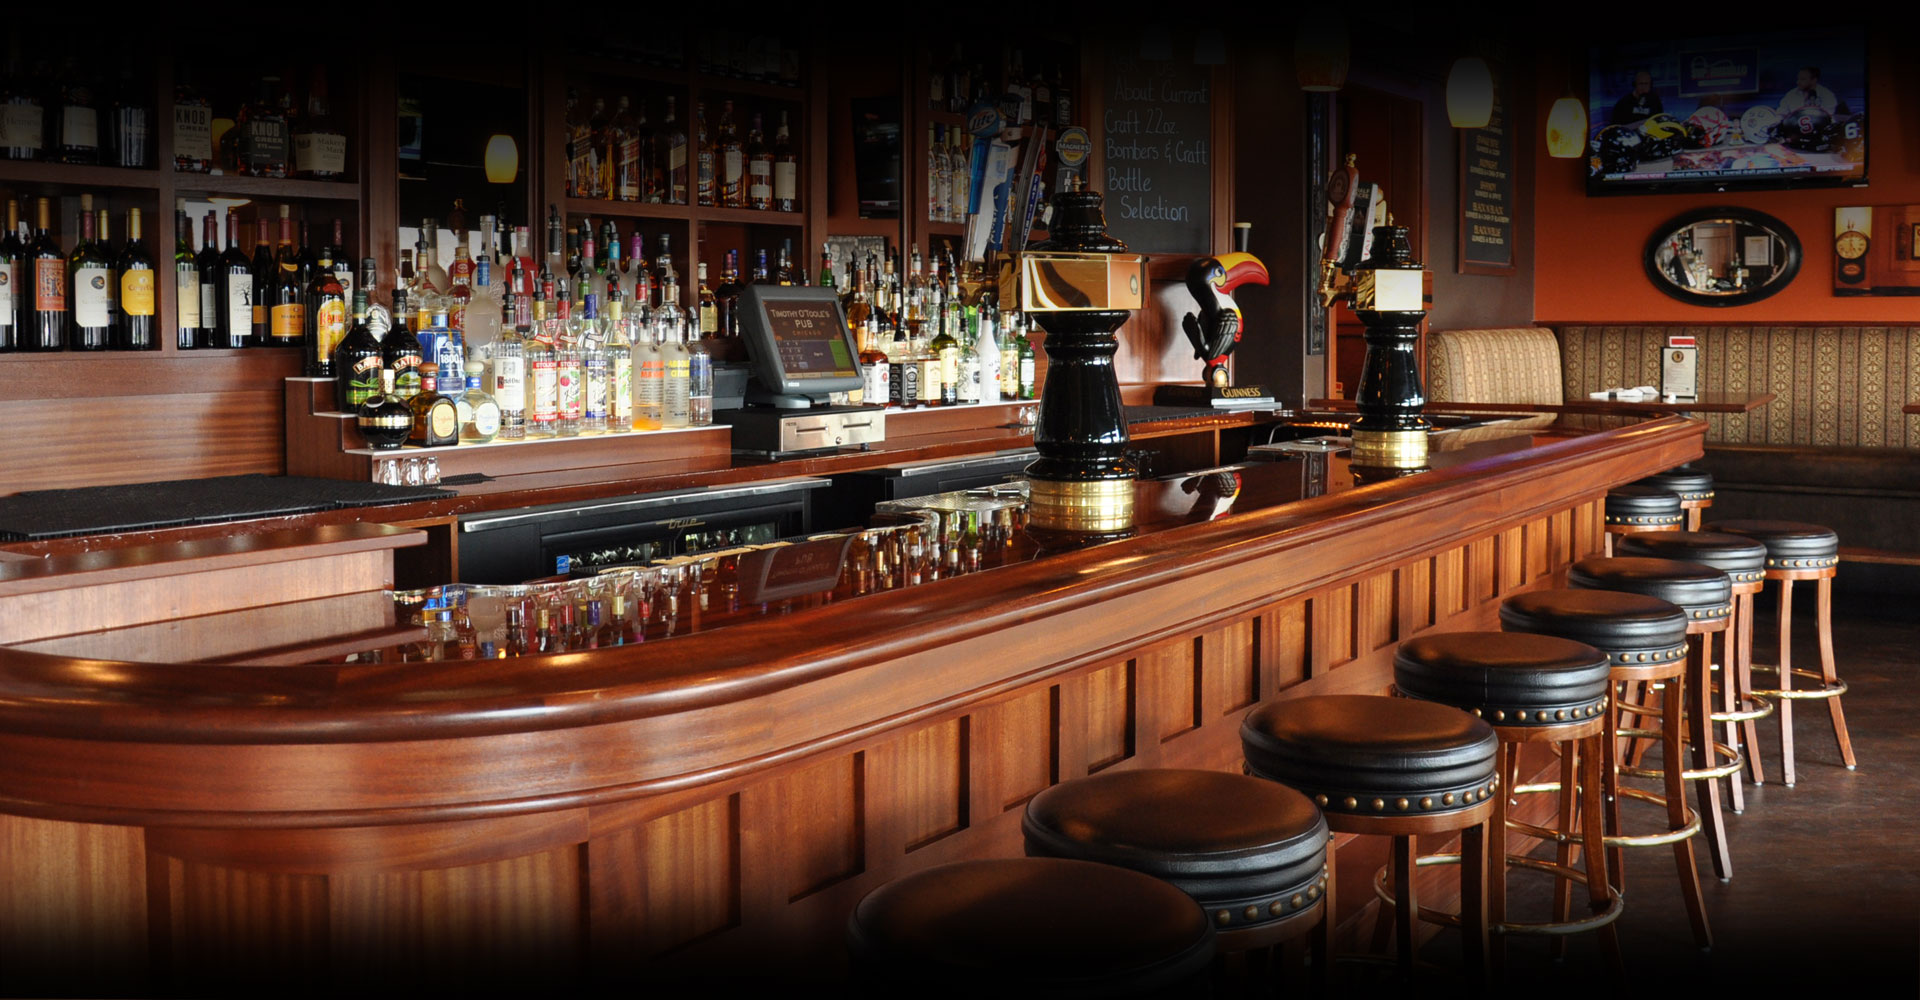 Timothy O'Toole's of Gurnee can accommodate groups of 10-400 people!